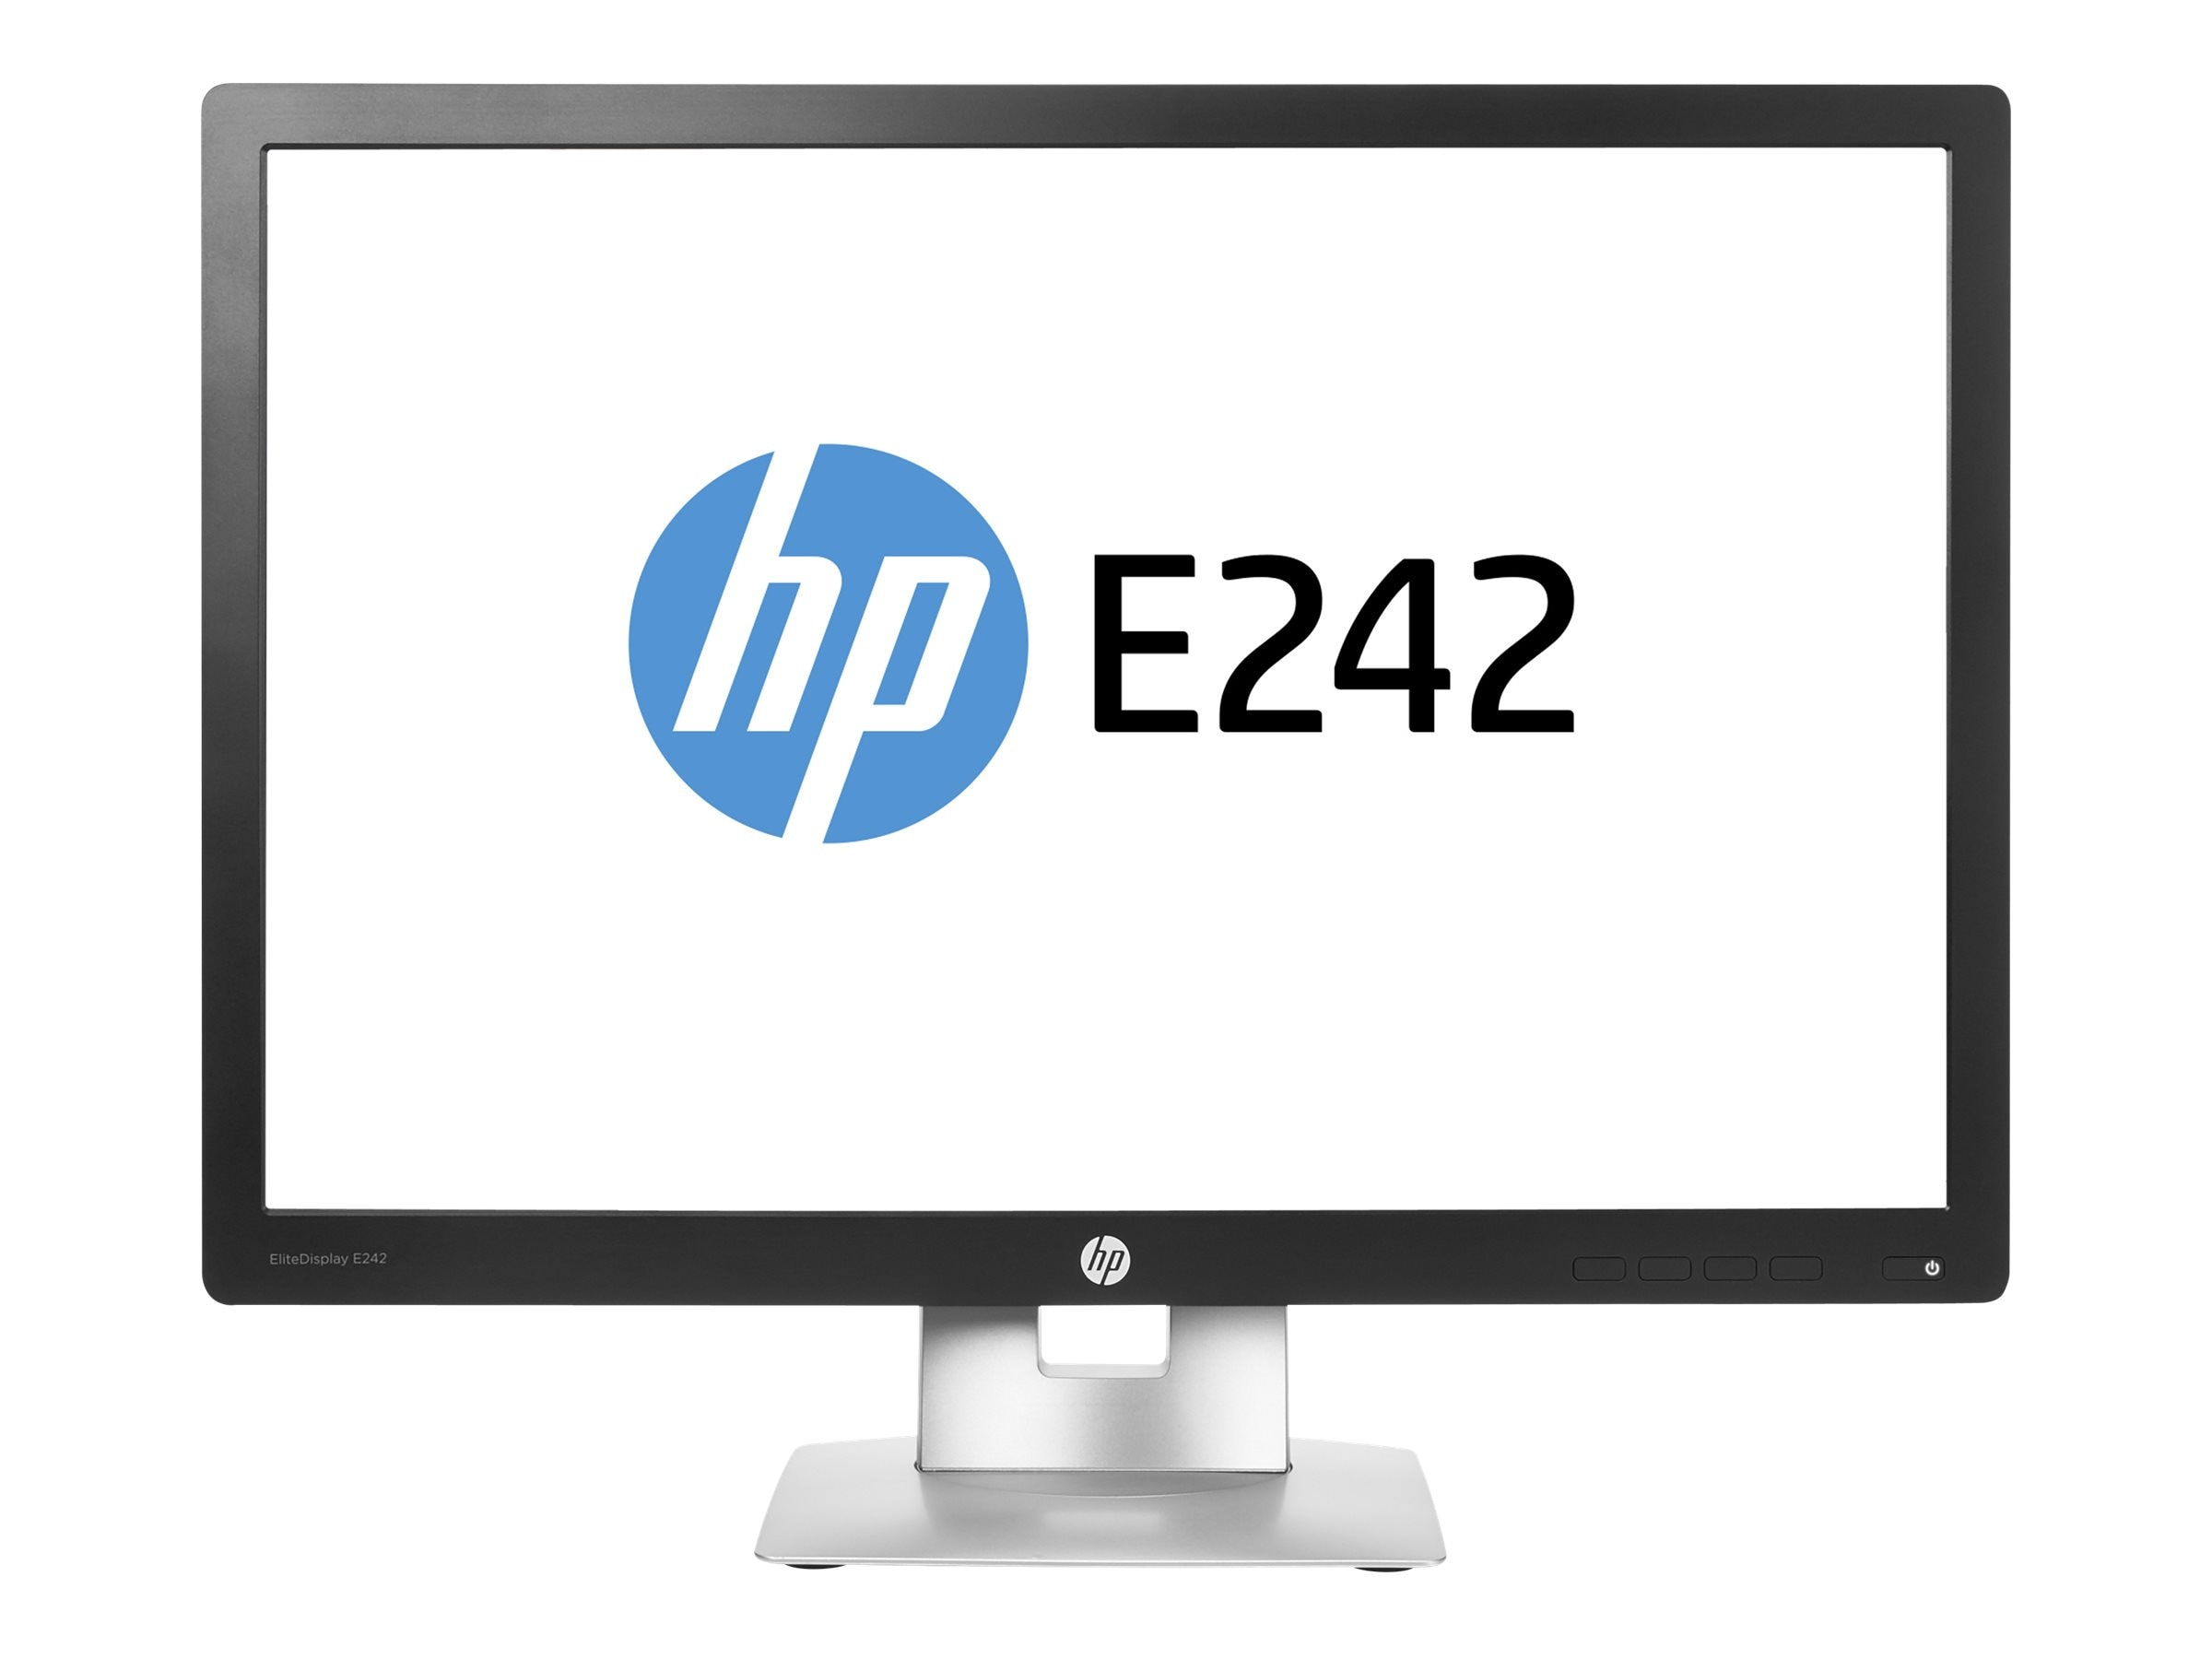 HP 24 E242 Full HD LED-LCD Monitor, Black, M1P02A8#ABA